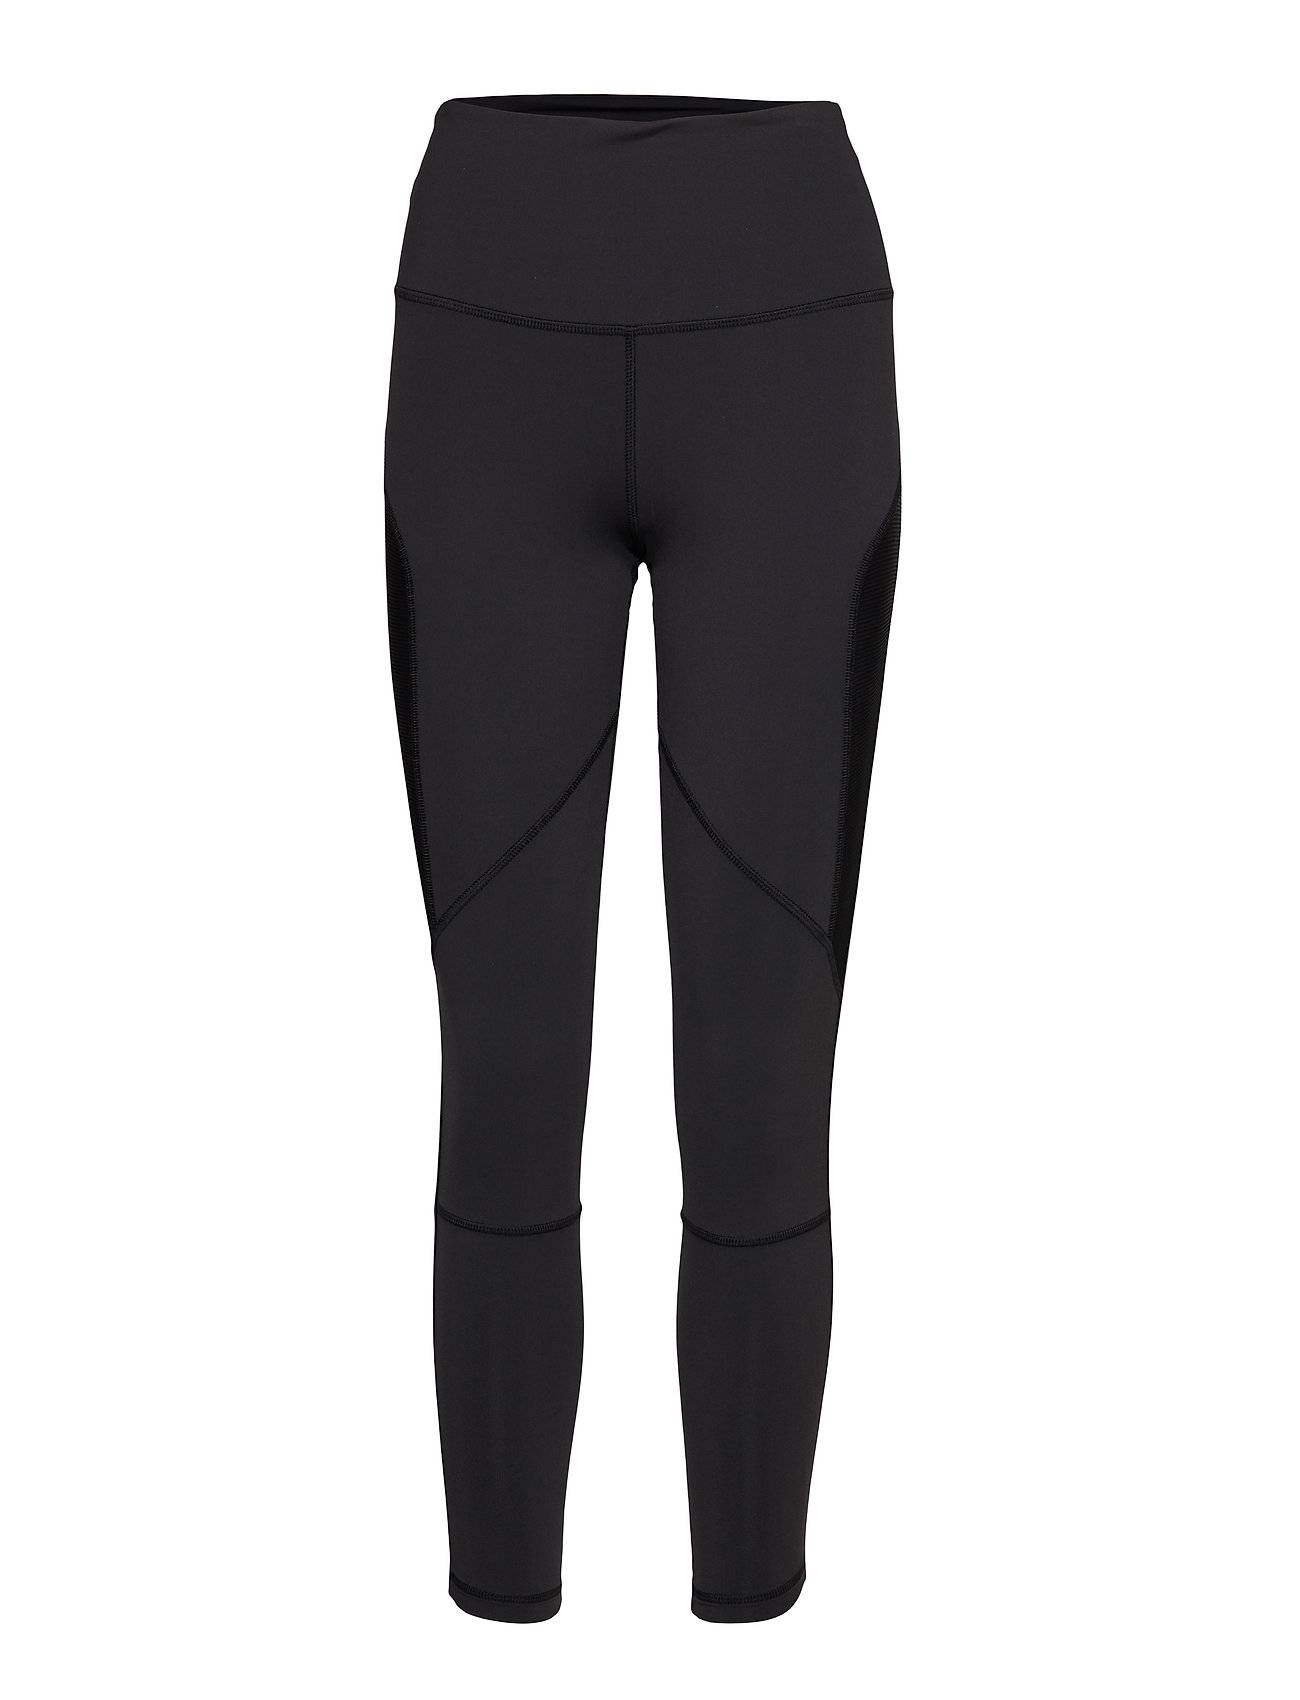 Image of Reebok Performance C Lux High Rise Tight 2.0 Running/training Tights Musta Reebok Performance